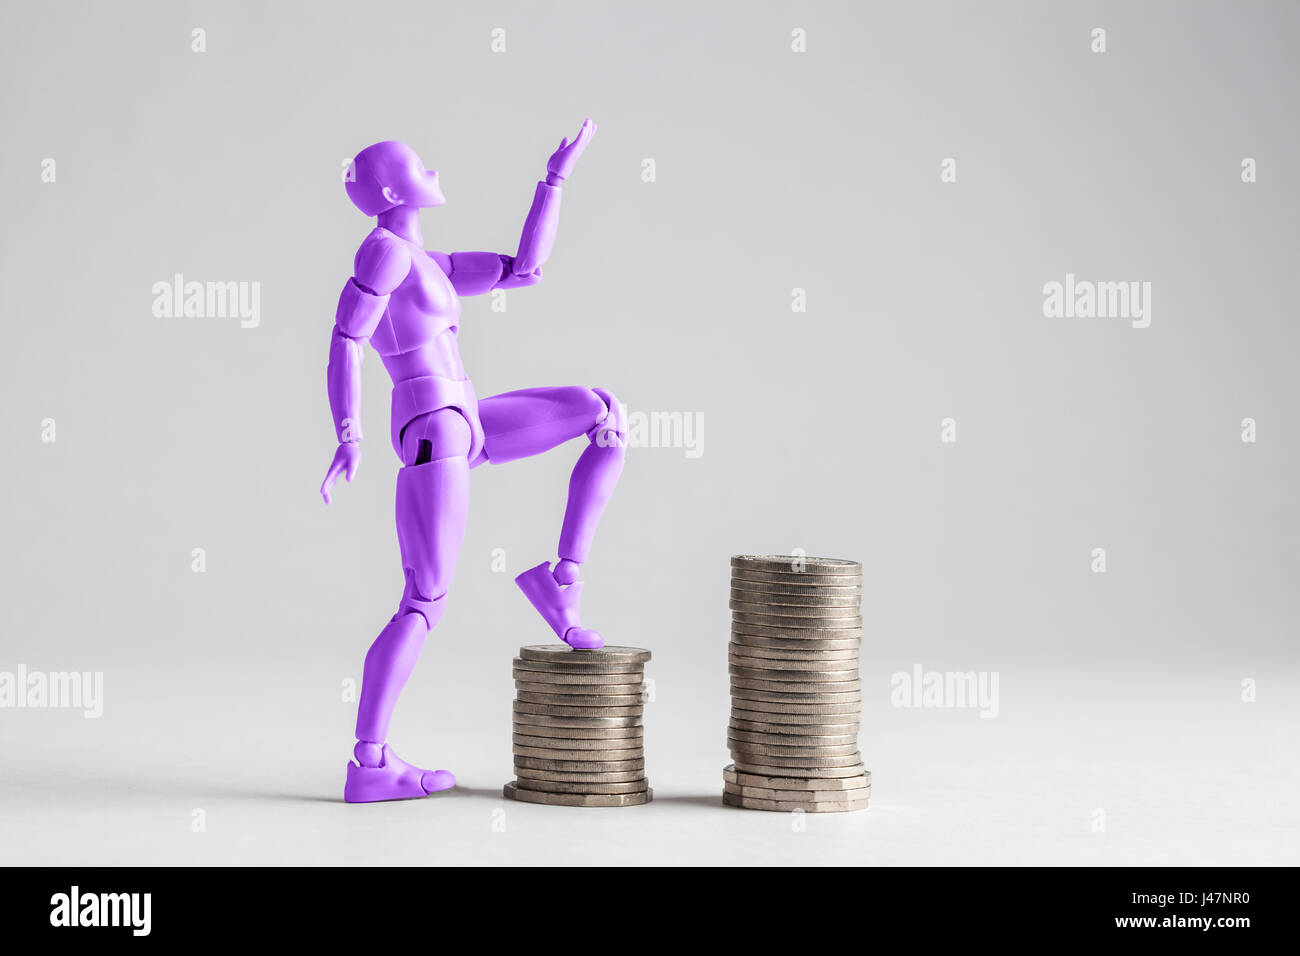 Empowered women stepping up the income ladder concept. Purple female figurine clilmbing up on piles of coins. Isolated Stock Photo